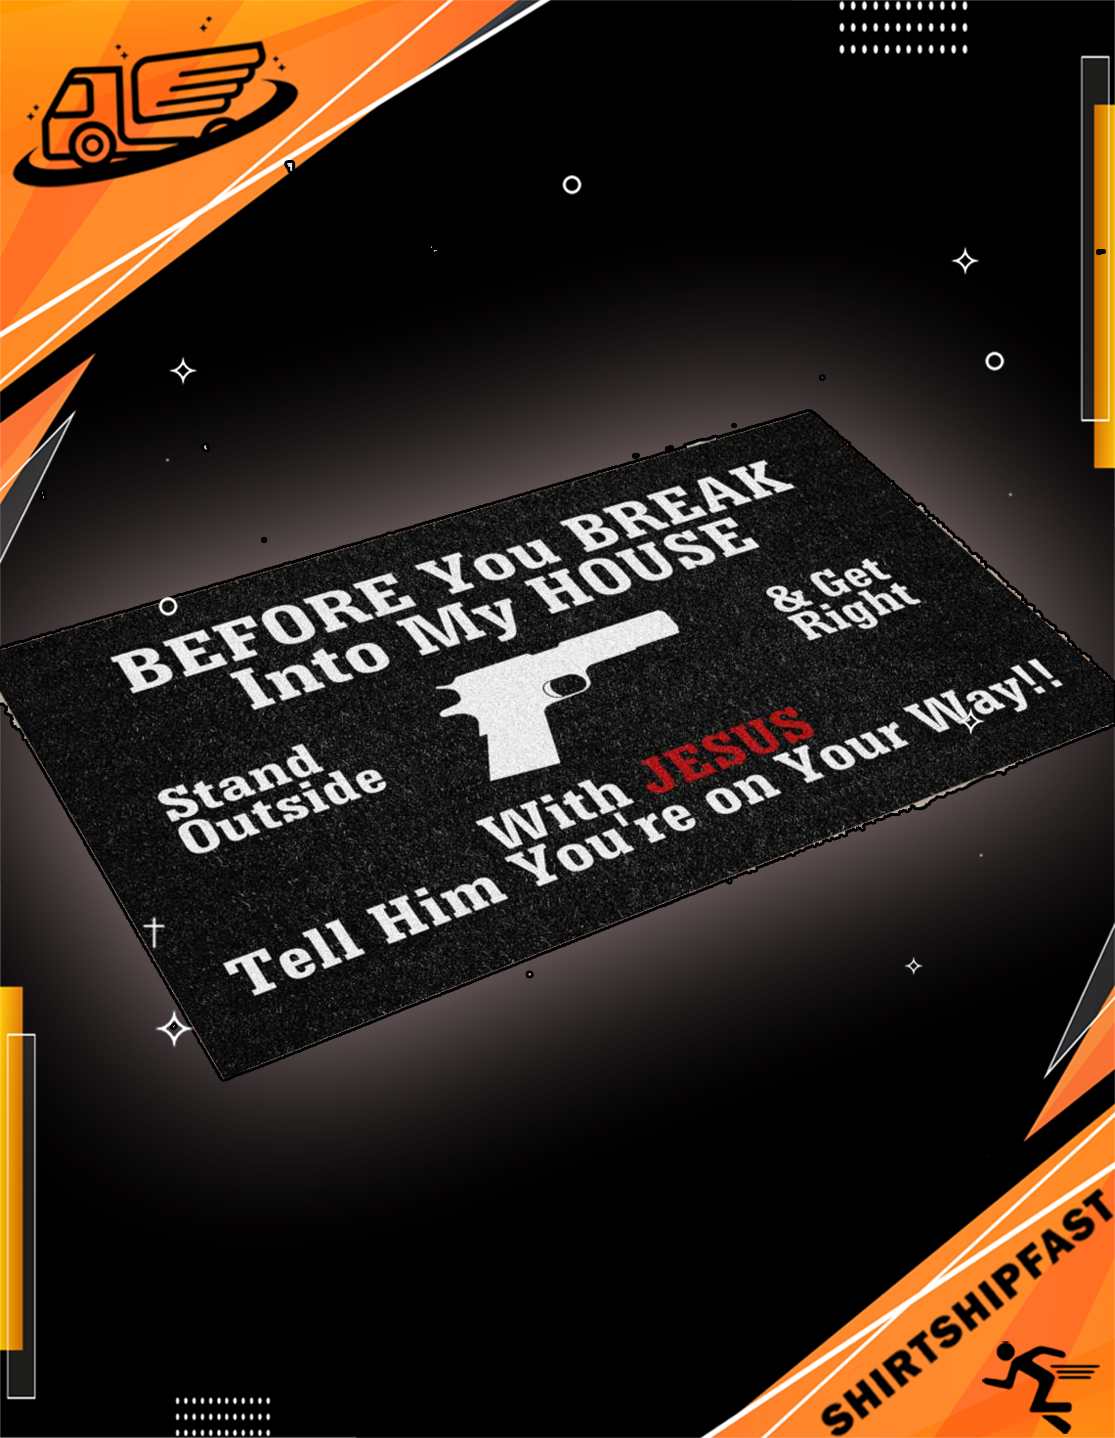 Gun Before you break into my house with Jesus tell him you're on your way doormat - Picture 3